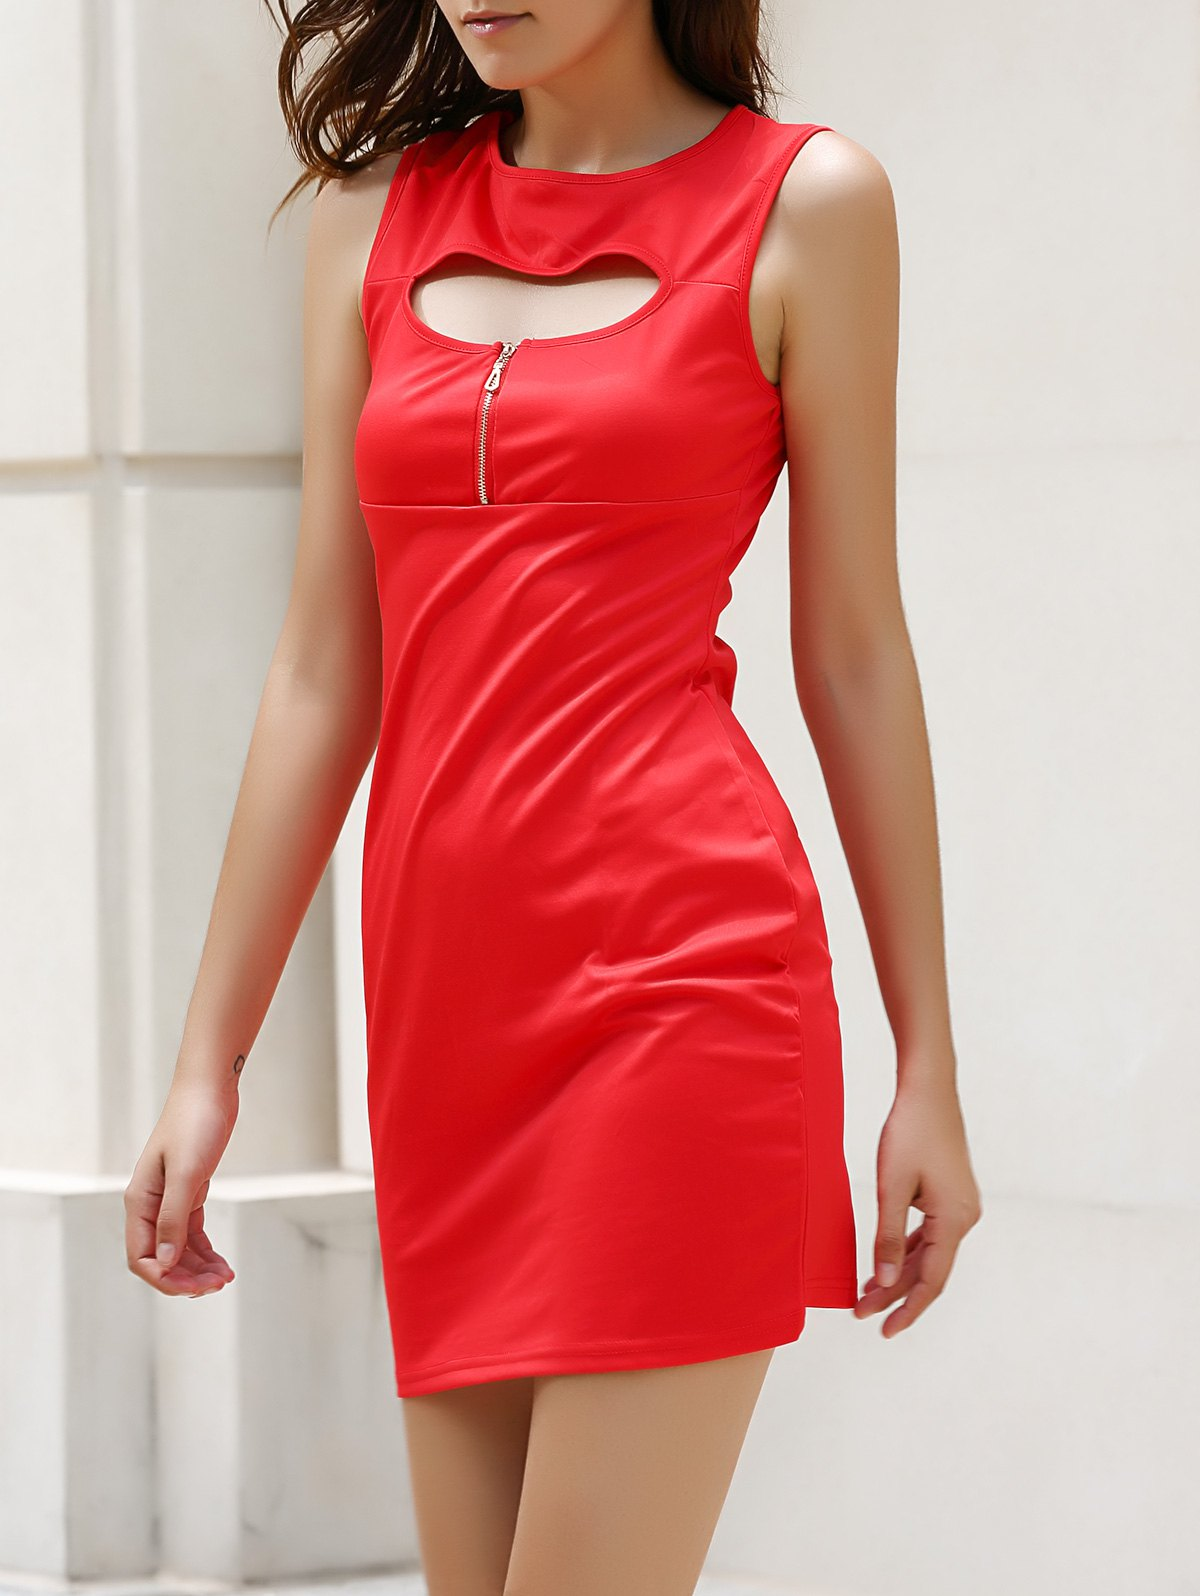 Alluring Sleeveless Jewel Neck Zippered Cut Out Pure Color Women's Bodycon Dress